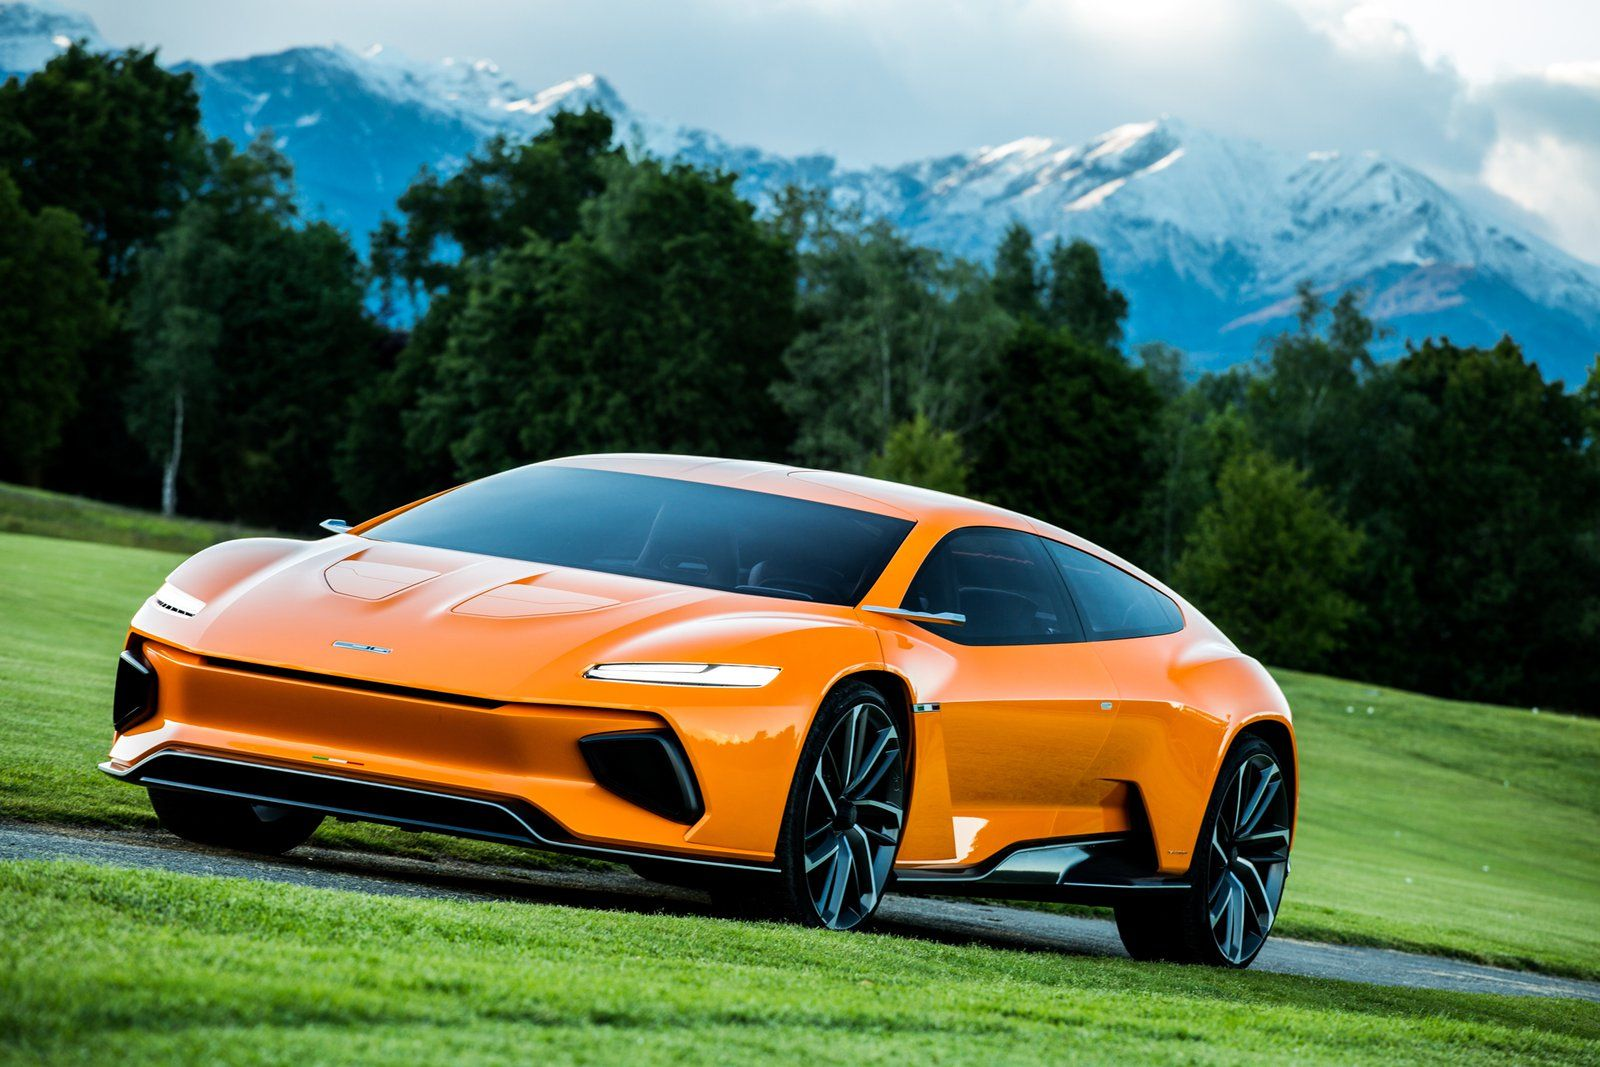 Italdesign Designs A High-tech And Sustainable Classic